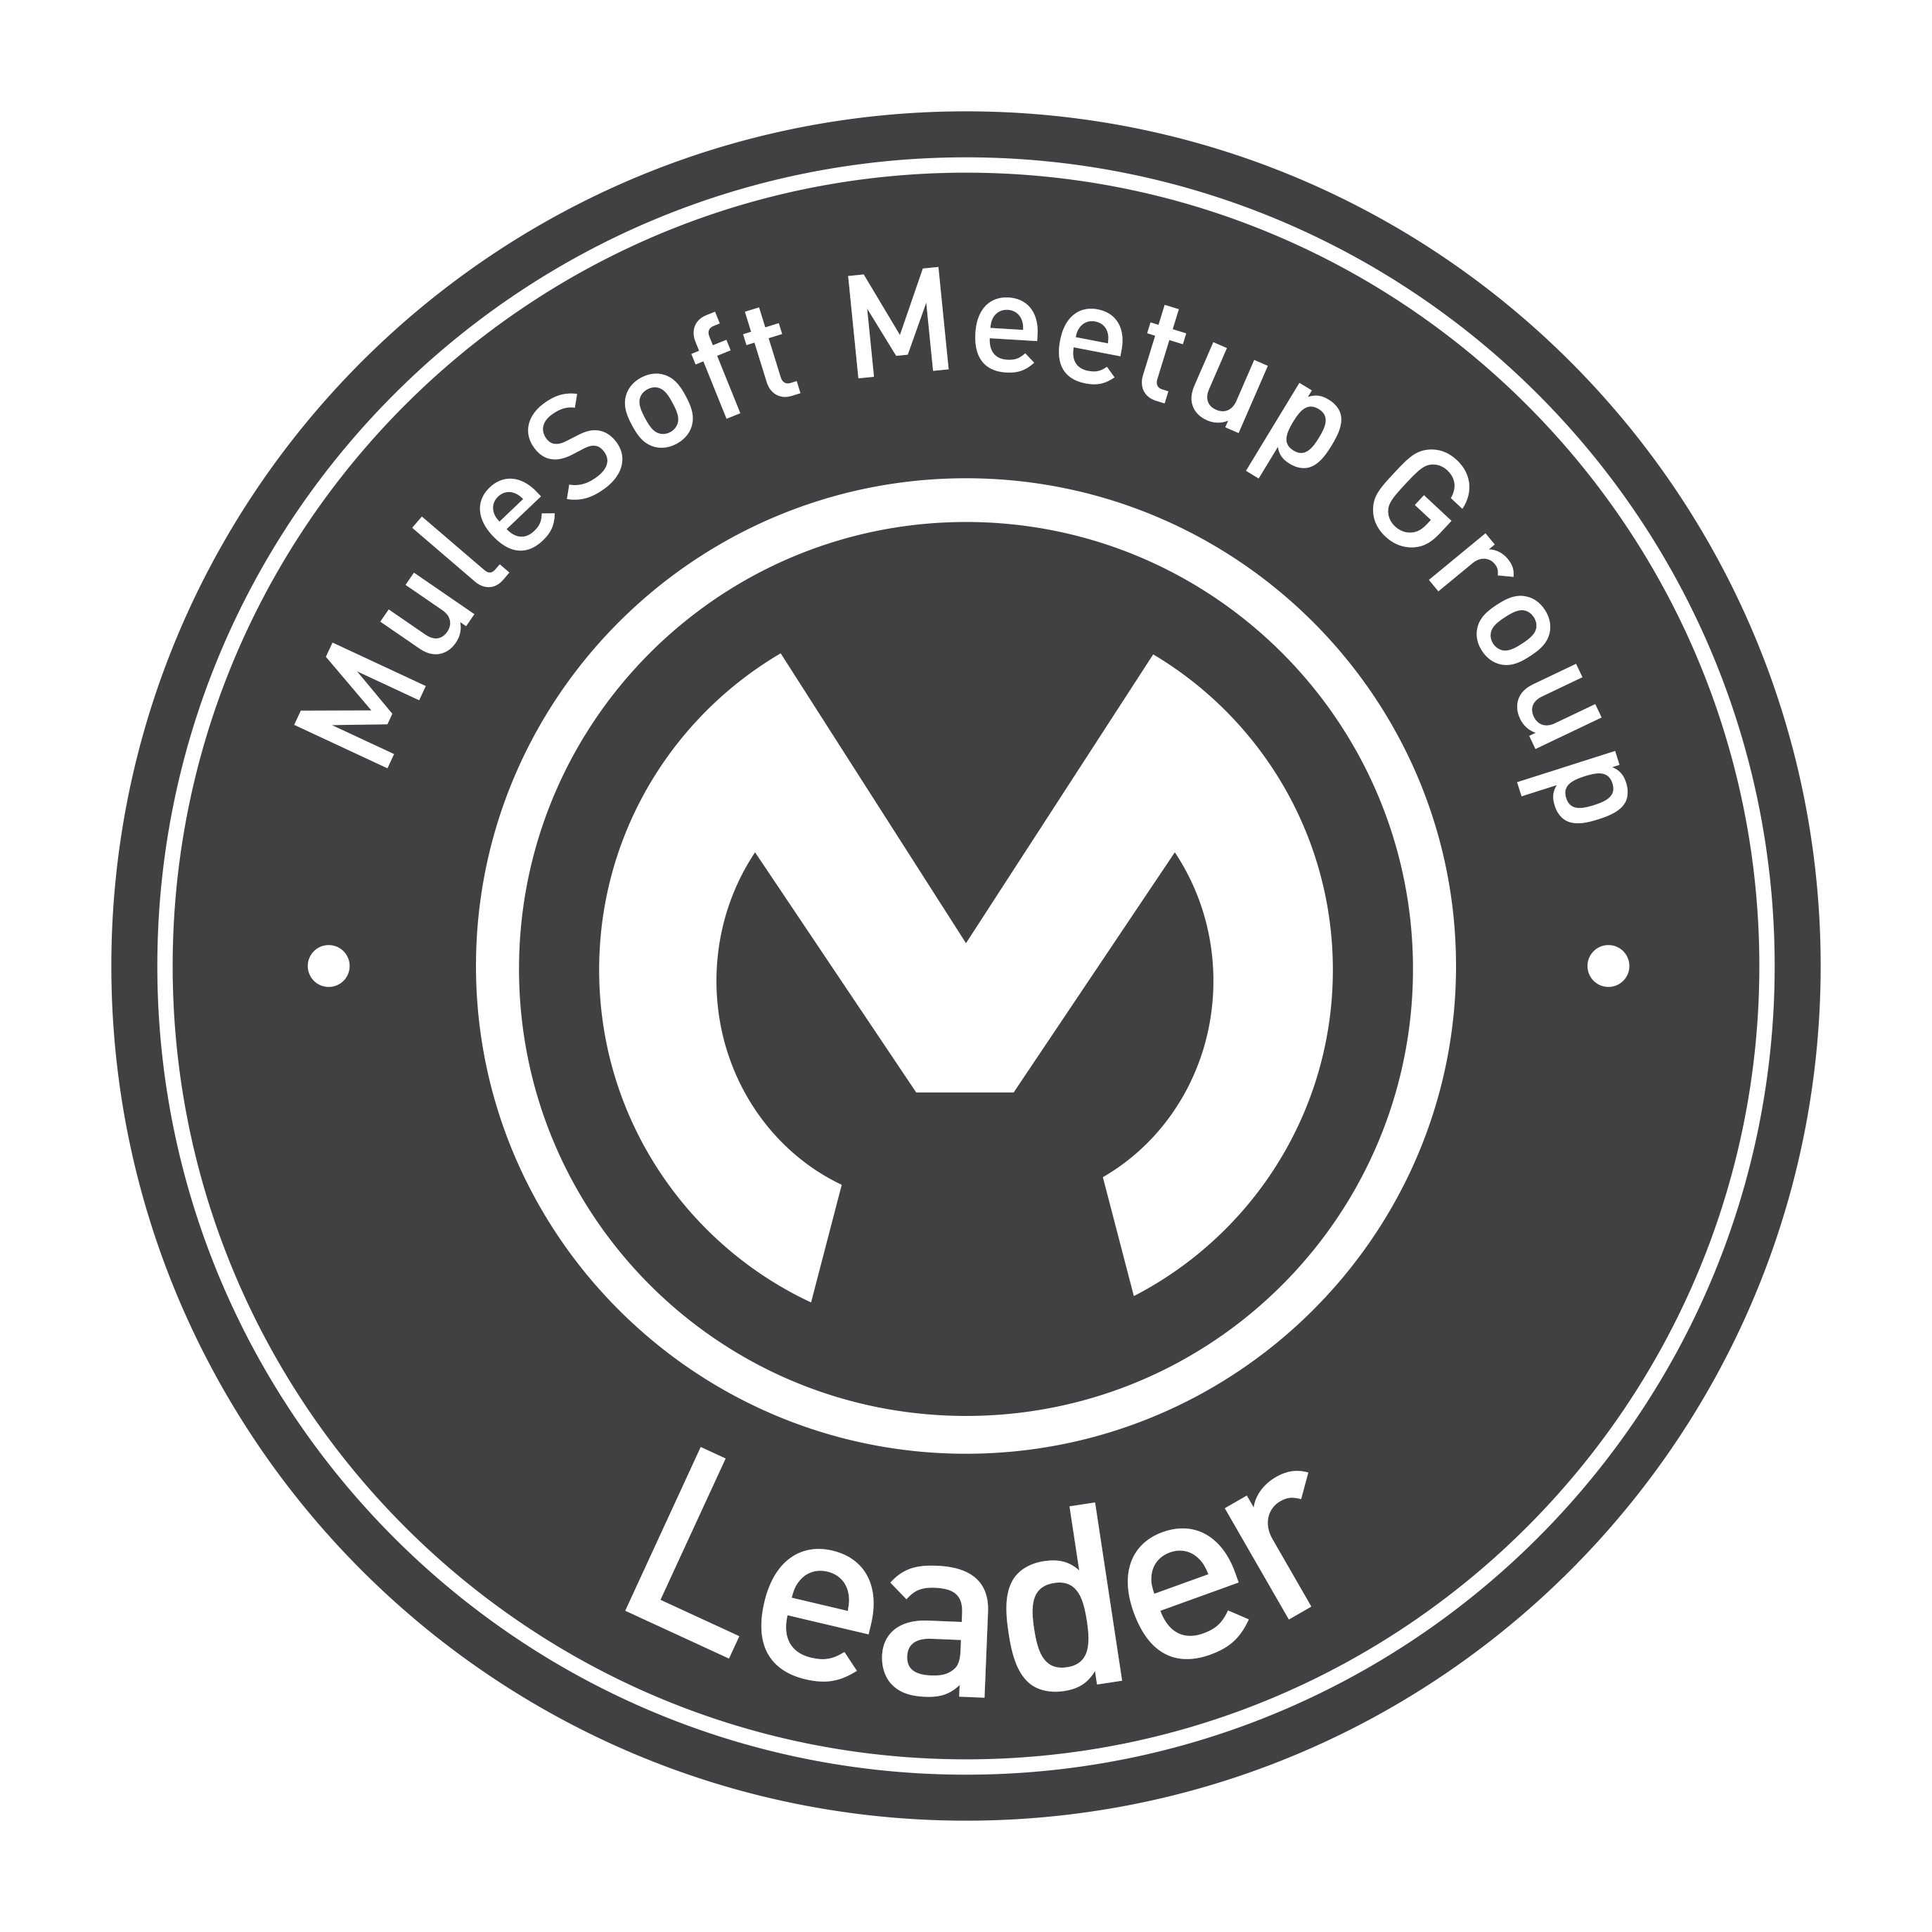 MuleSoft Meetup Group Leader